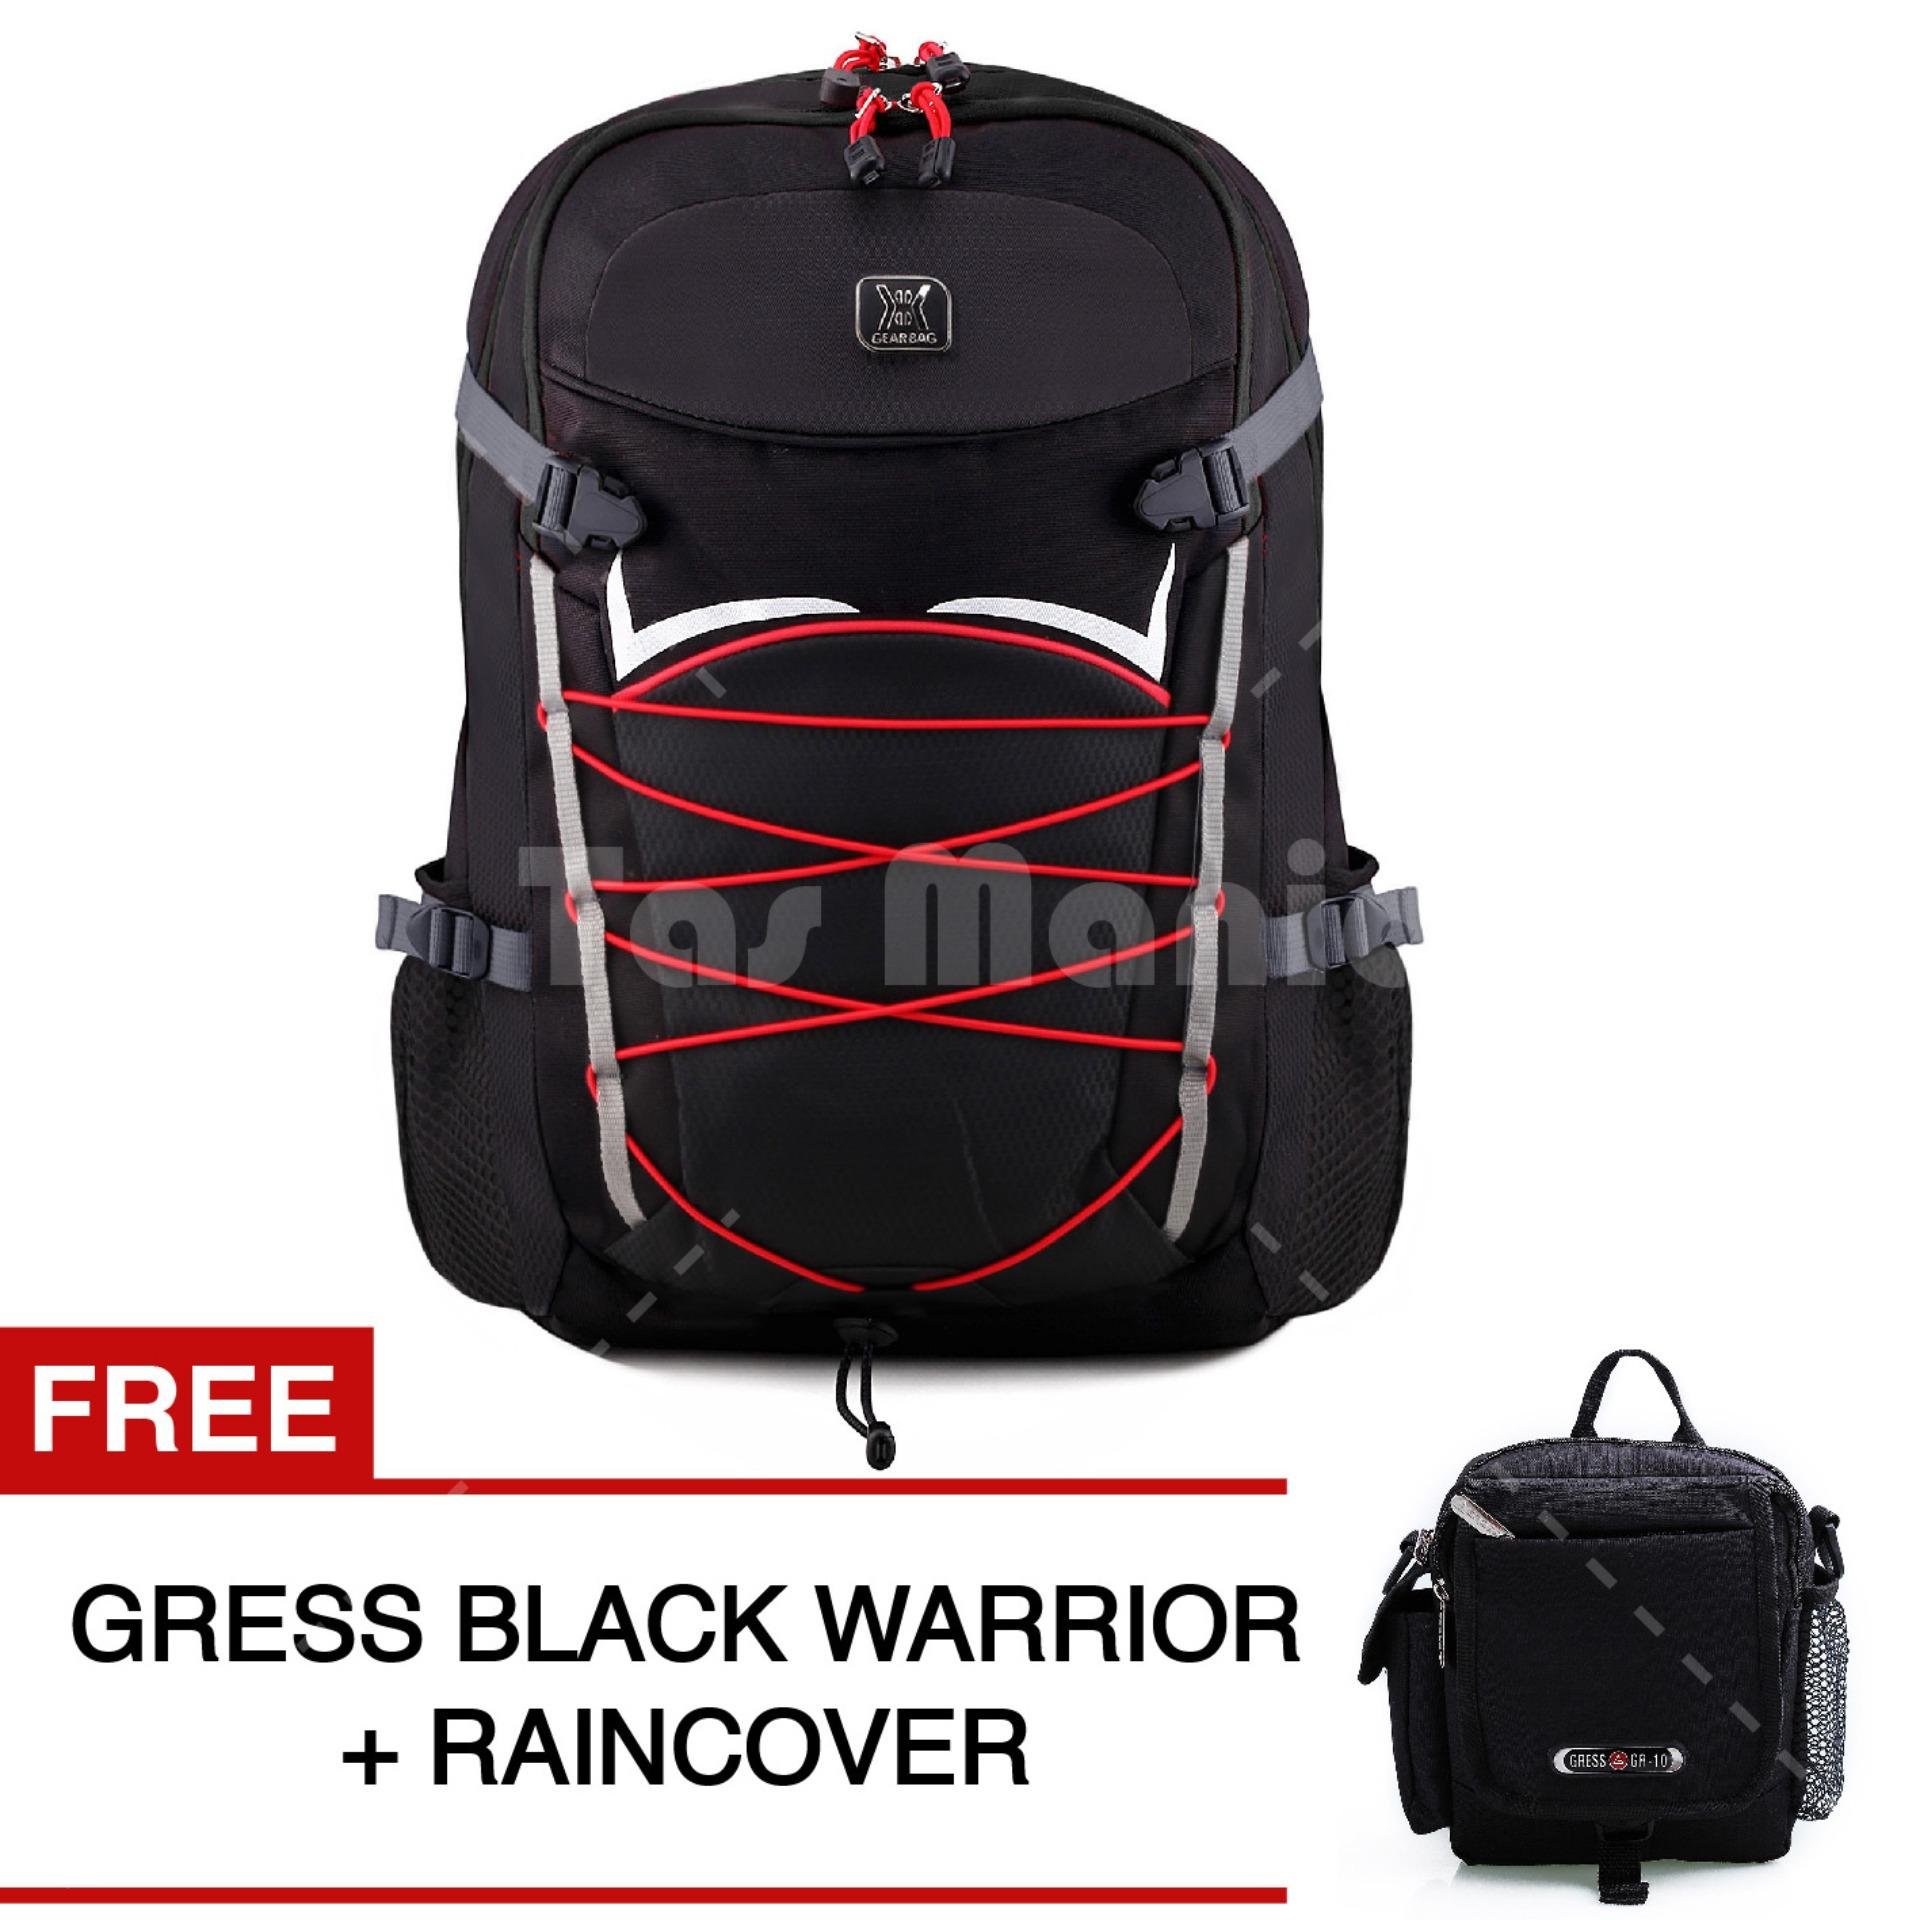 Gear Bag Andromeda Laptop Backpack - Black + Raincover + FREE Tas Selempang Gress - Black Warrior BW20